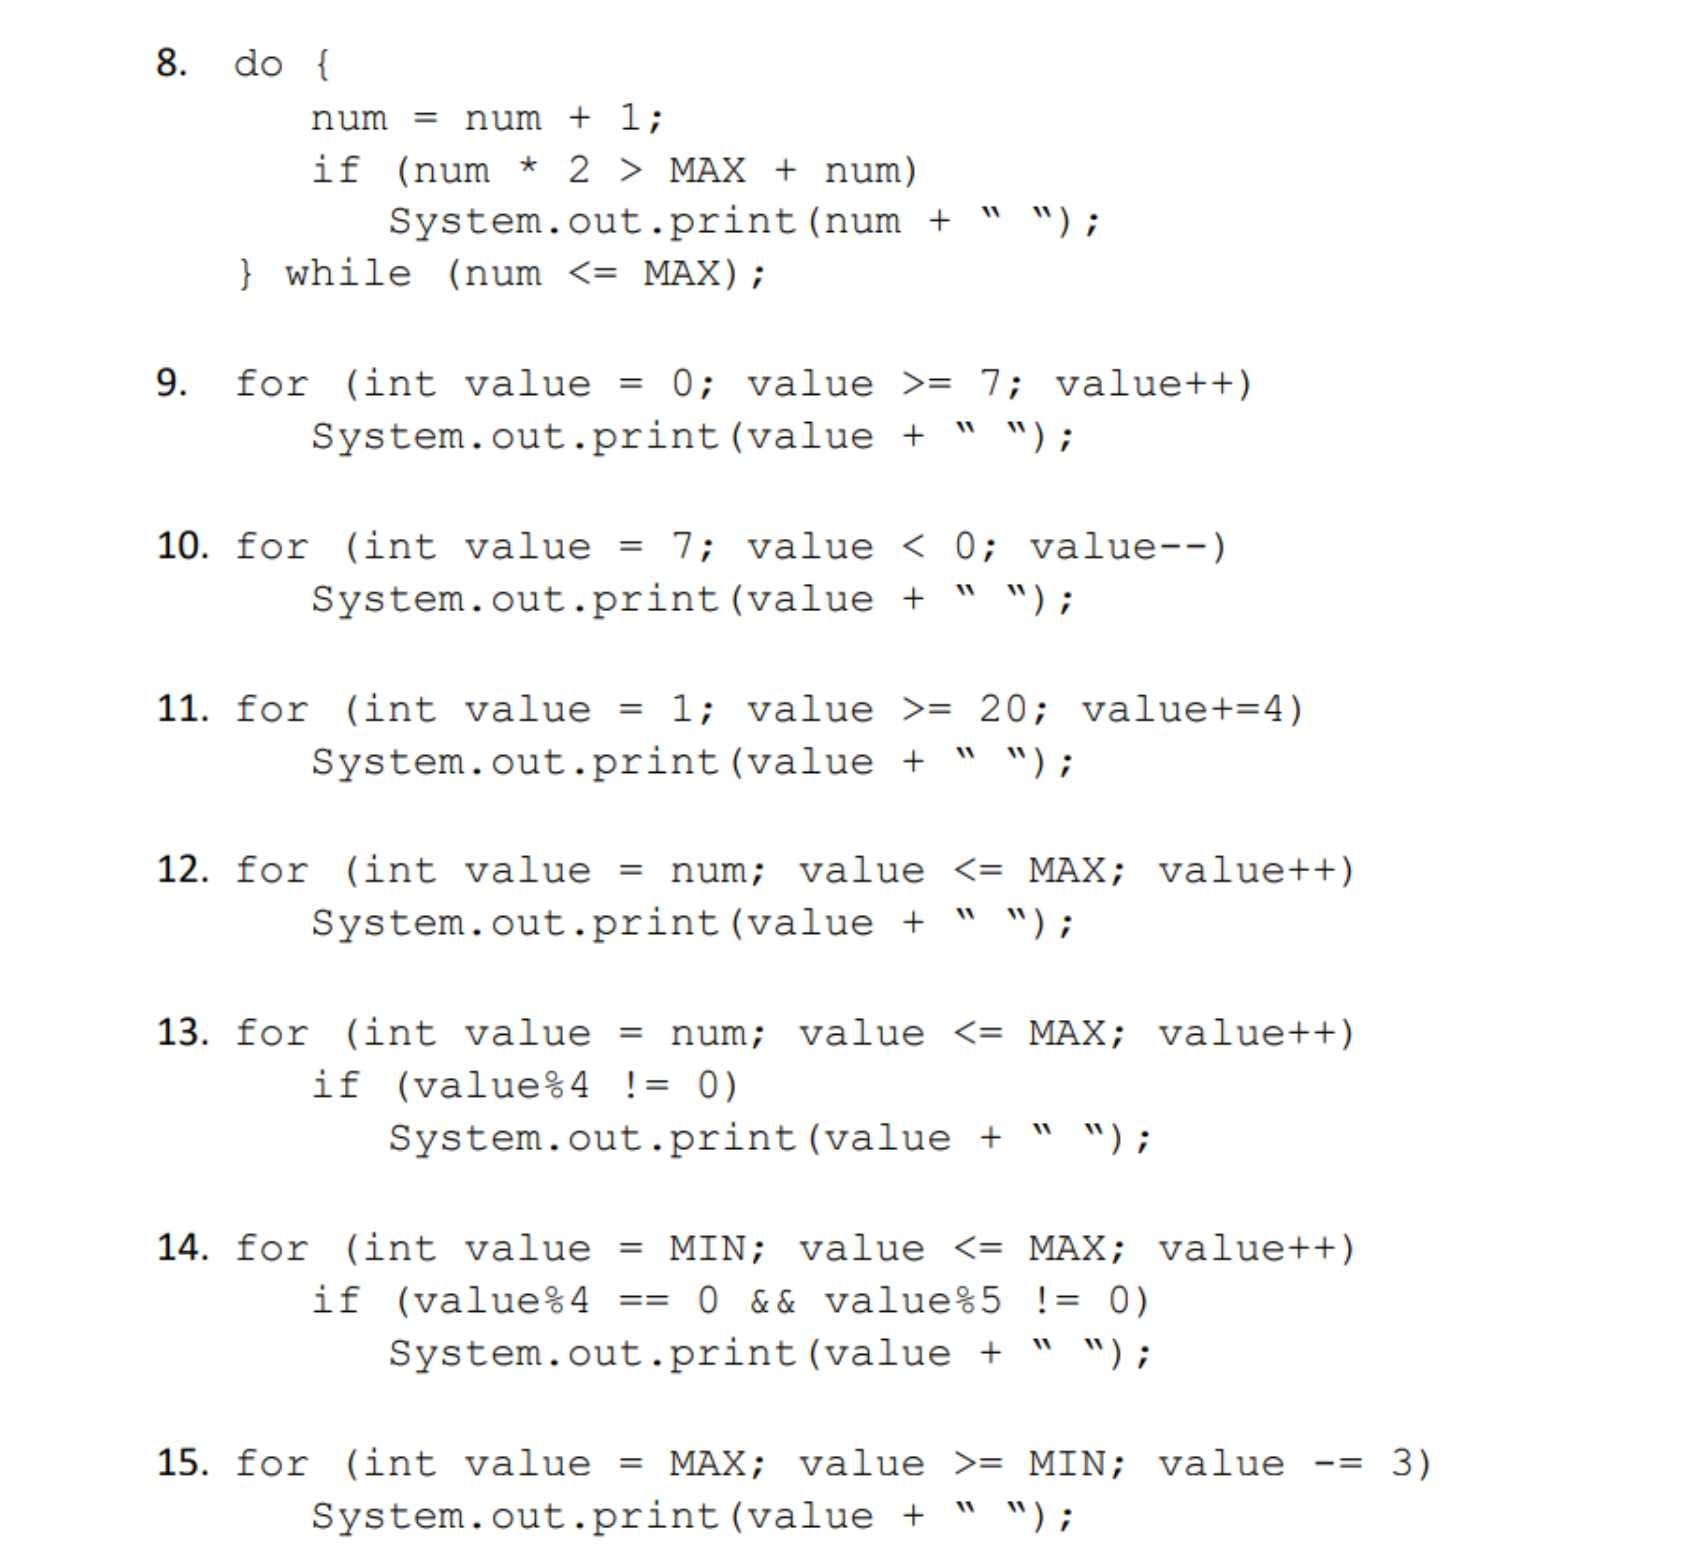 "8. do[ num = num + 1 ; if (num * 2 〉 MAX + num) System.out.print (num + """"); while (num <- MAX) 9. for (int value0 value >- 7; value++) System.out.print (value "" ""); 10. f r (int value = 7: value < 0; value-_) System. out.print (value + "" w); 11. for (int value - 1; value -20; value+-4) System.out.print (value + "" W); 12. for (int value -num; valueMAX; value++ System.out.print (value "" ""); 13. for (int value - num; valueMAX; value++) System.out.print (value "" ""); 14. for (int value-MIN; value 〈-MAX ; value++) System.out.print (value "" ""); if (value%4 ! 0) 15. f r (int value = MAX ; value 〉= MIN; value-= 3) System. out.print (value + "" w);"